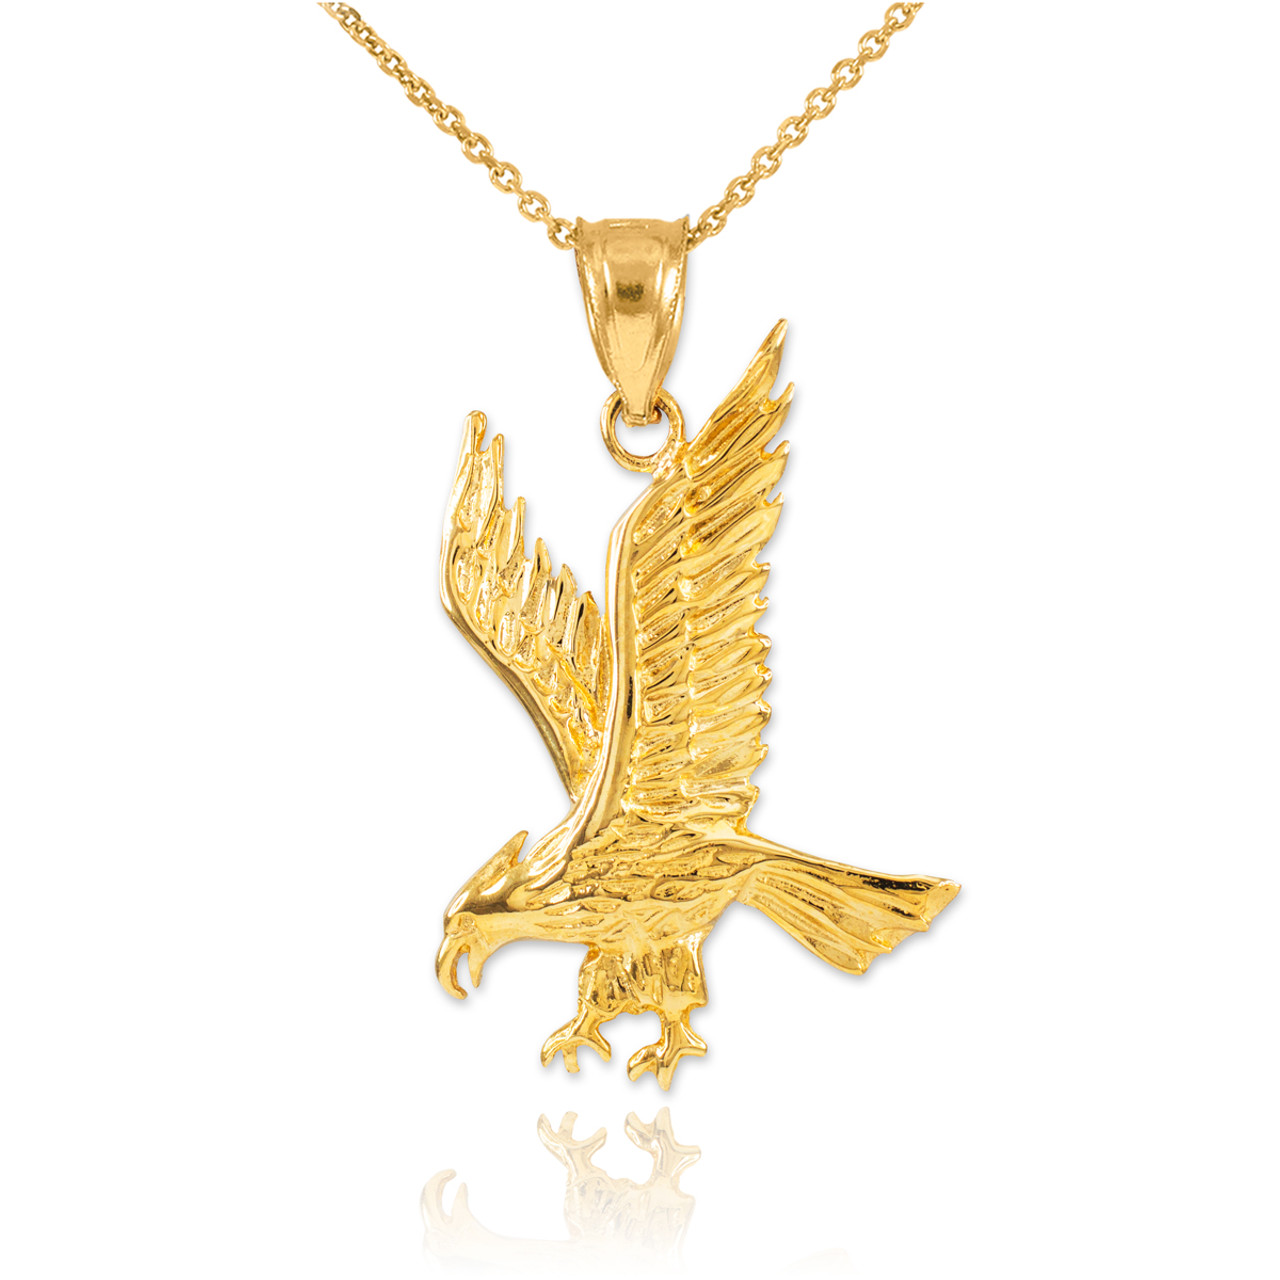 Solid gold eagle pendant necklace eagle pendants solid gold eagle pendant necklace aloadofball Images